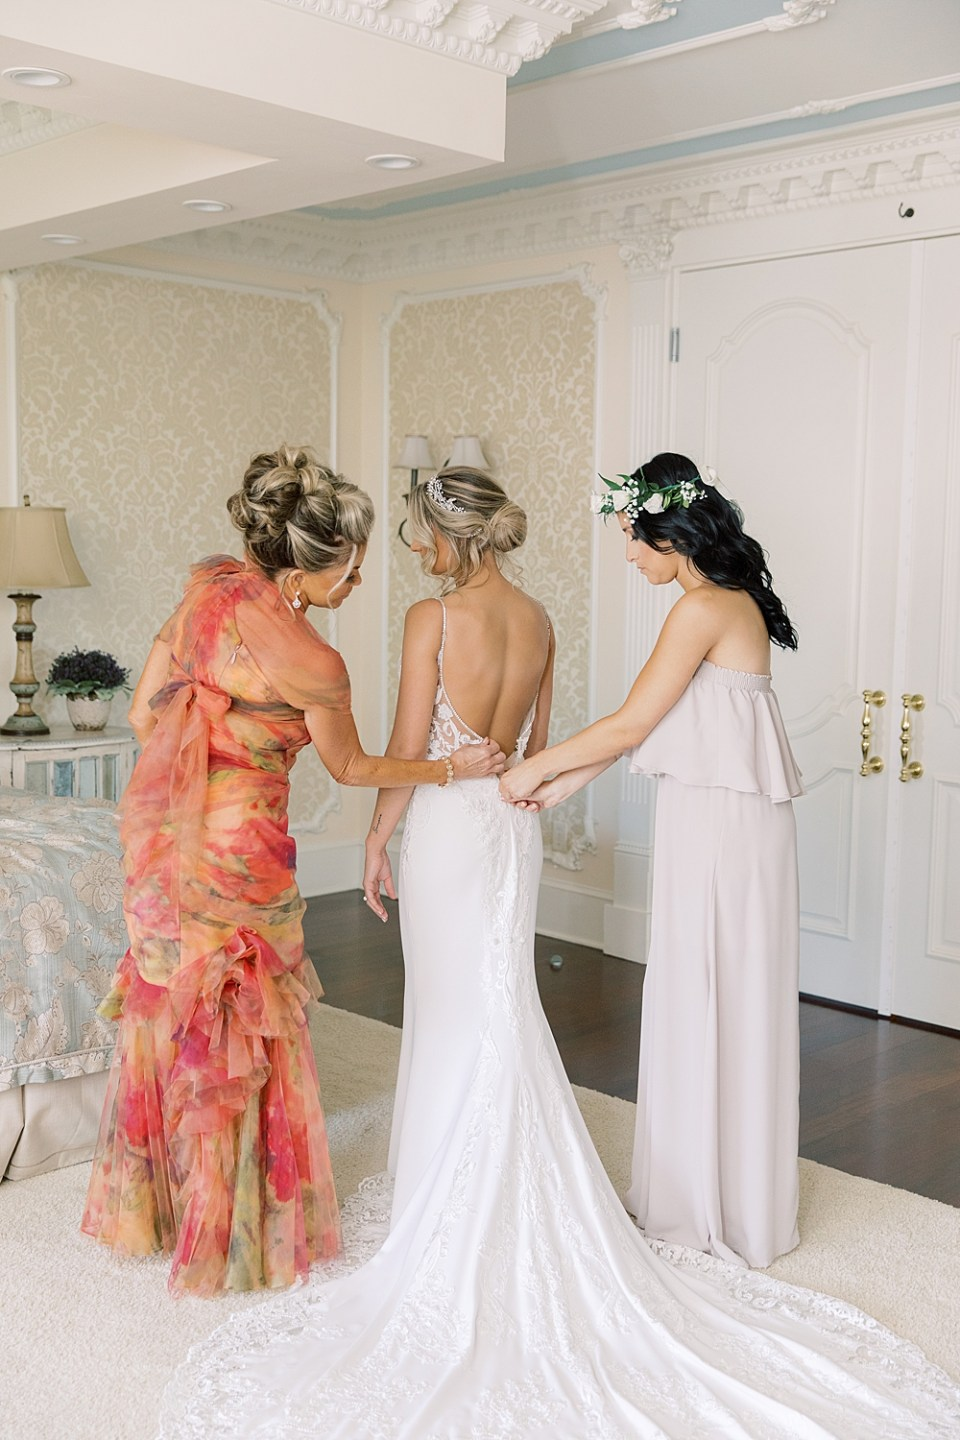 bride getting ready | ashford estate bridal suite | new jersey wedding photographer sarah canning photography